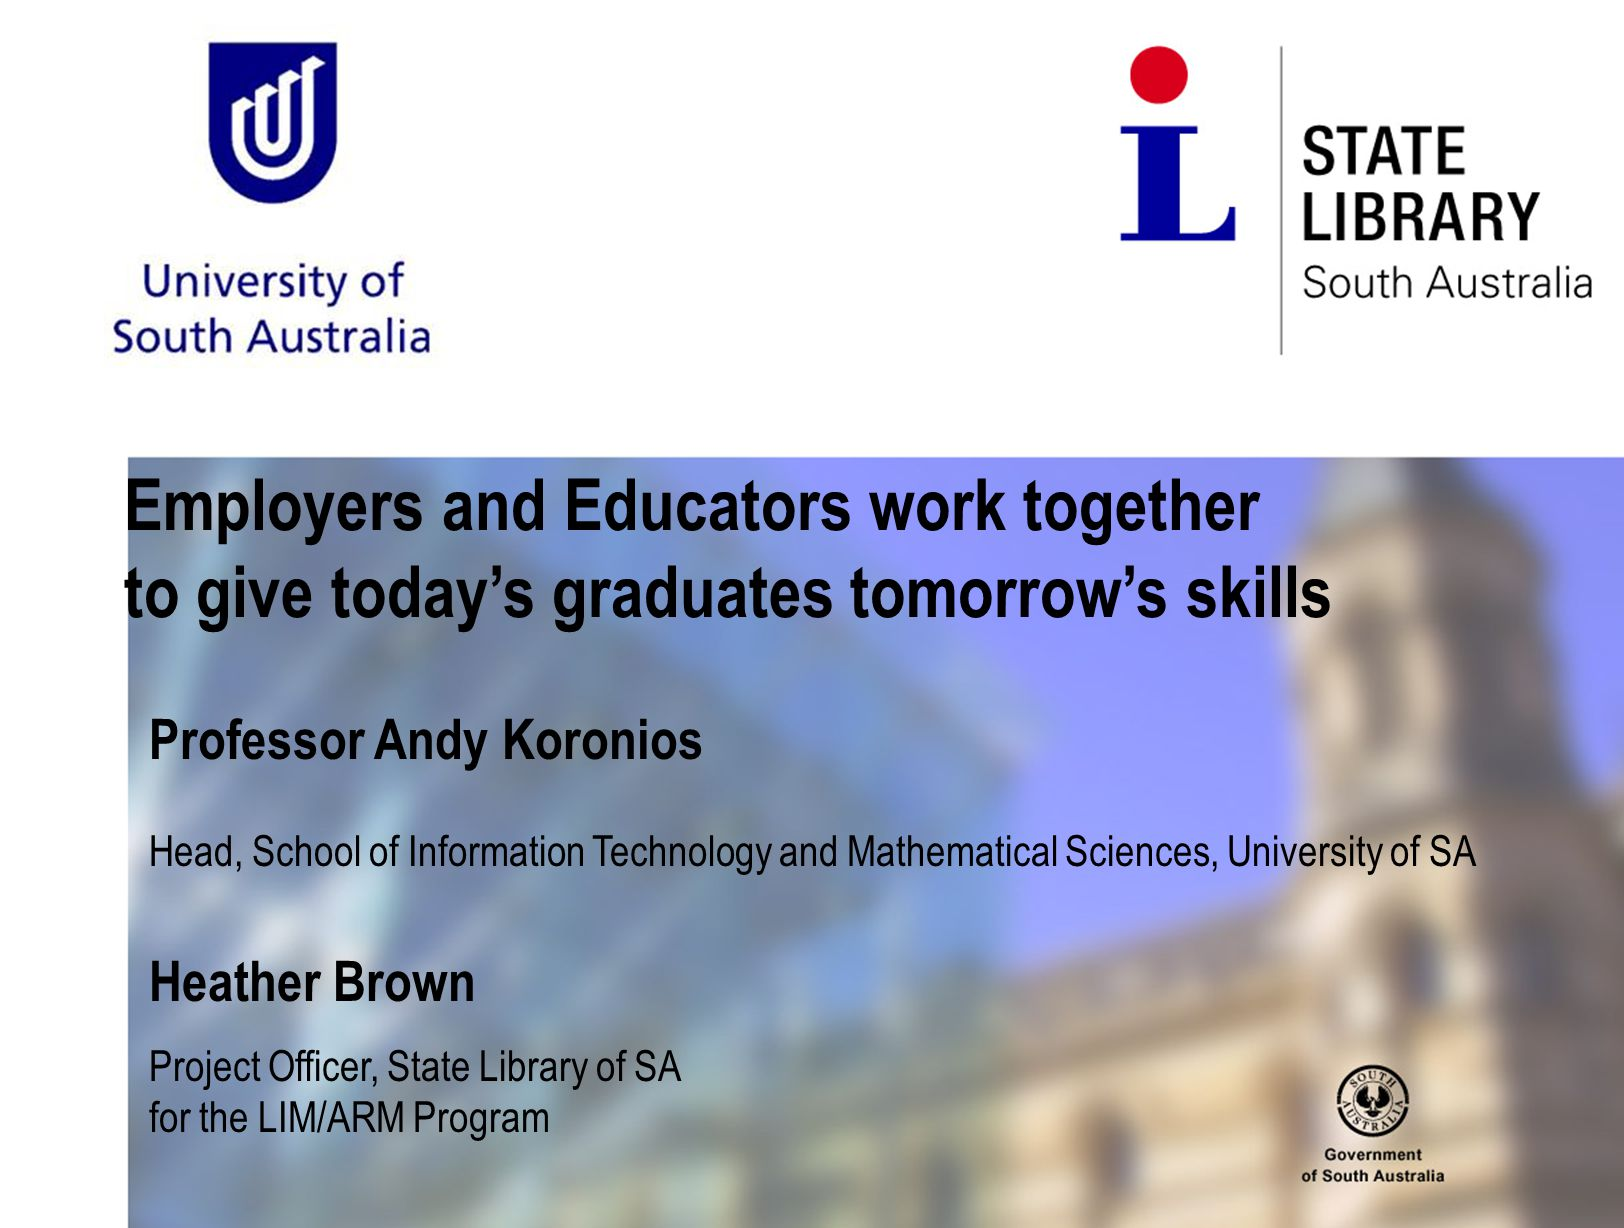 Employers and Educators work together to give today's graduates tomorrow's skills Professor Andy Koronios Head, School of Information Technology and Mathematical Sciences, University of SA Heather Brown Project Officer, State Library of SA for the LIM/ARM Program